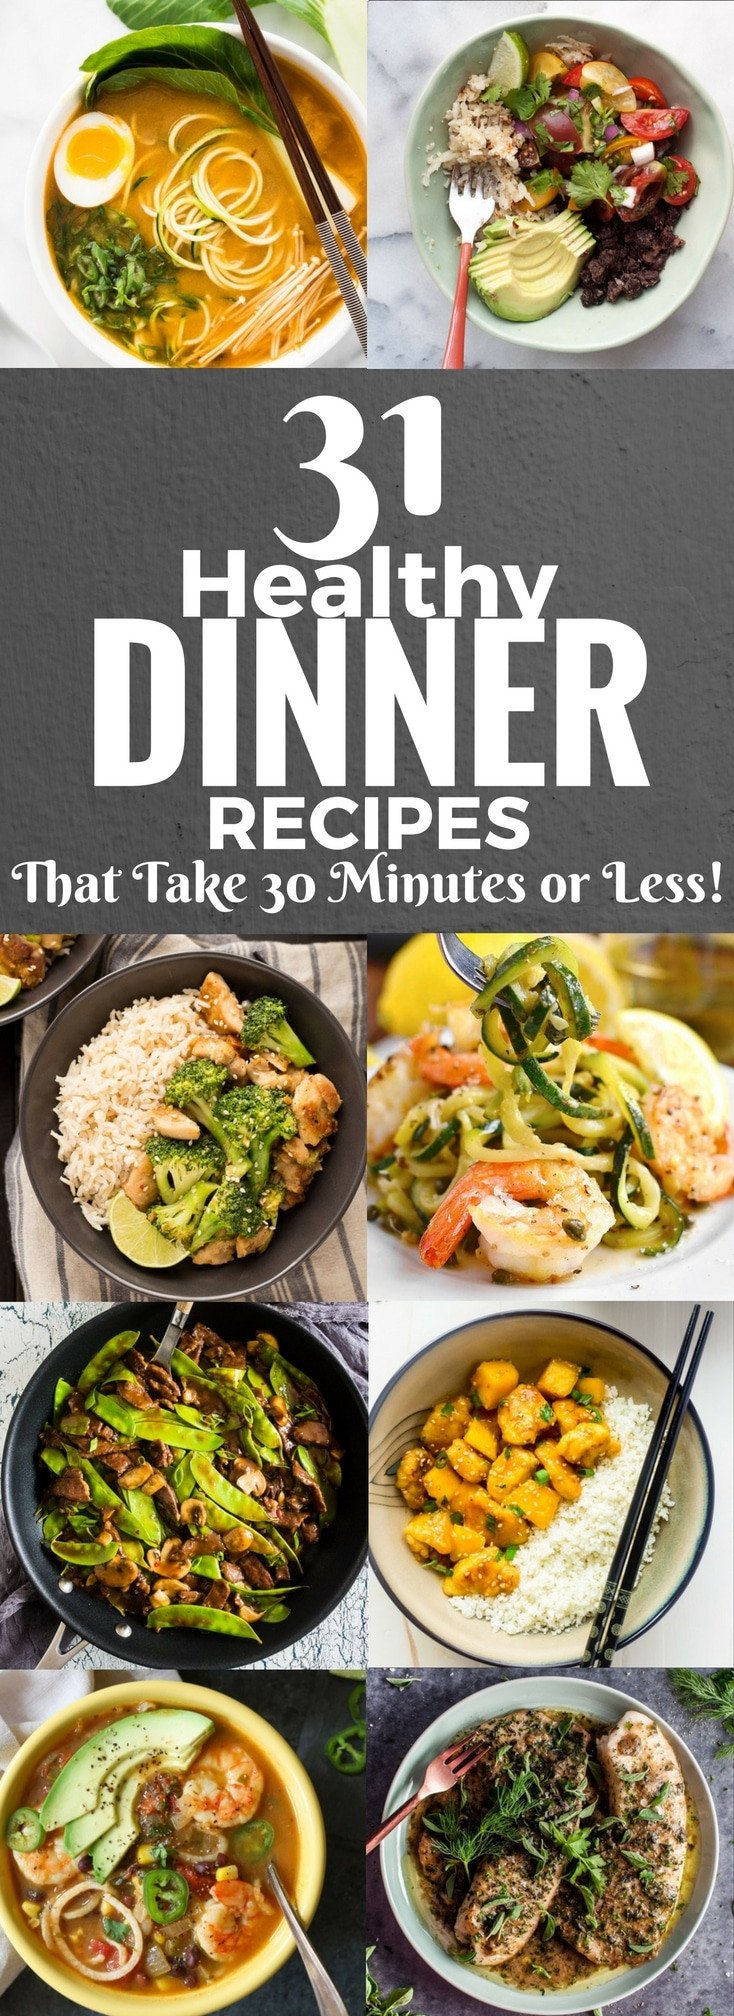 Healthy Dinner Ideas Pinterest  31 Healthy Dinner Recipes That Take 30 Minutes or Less